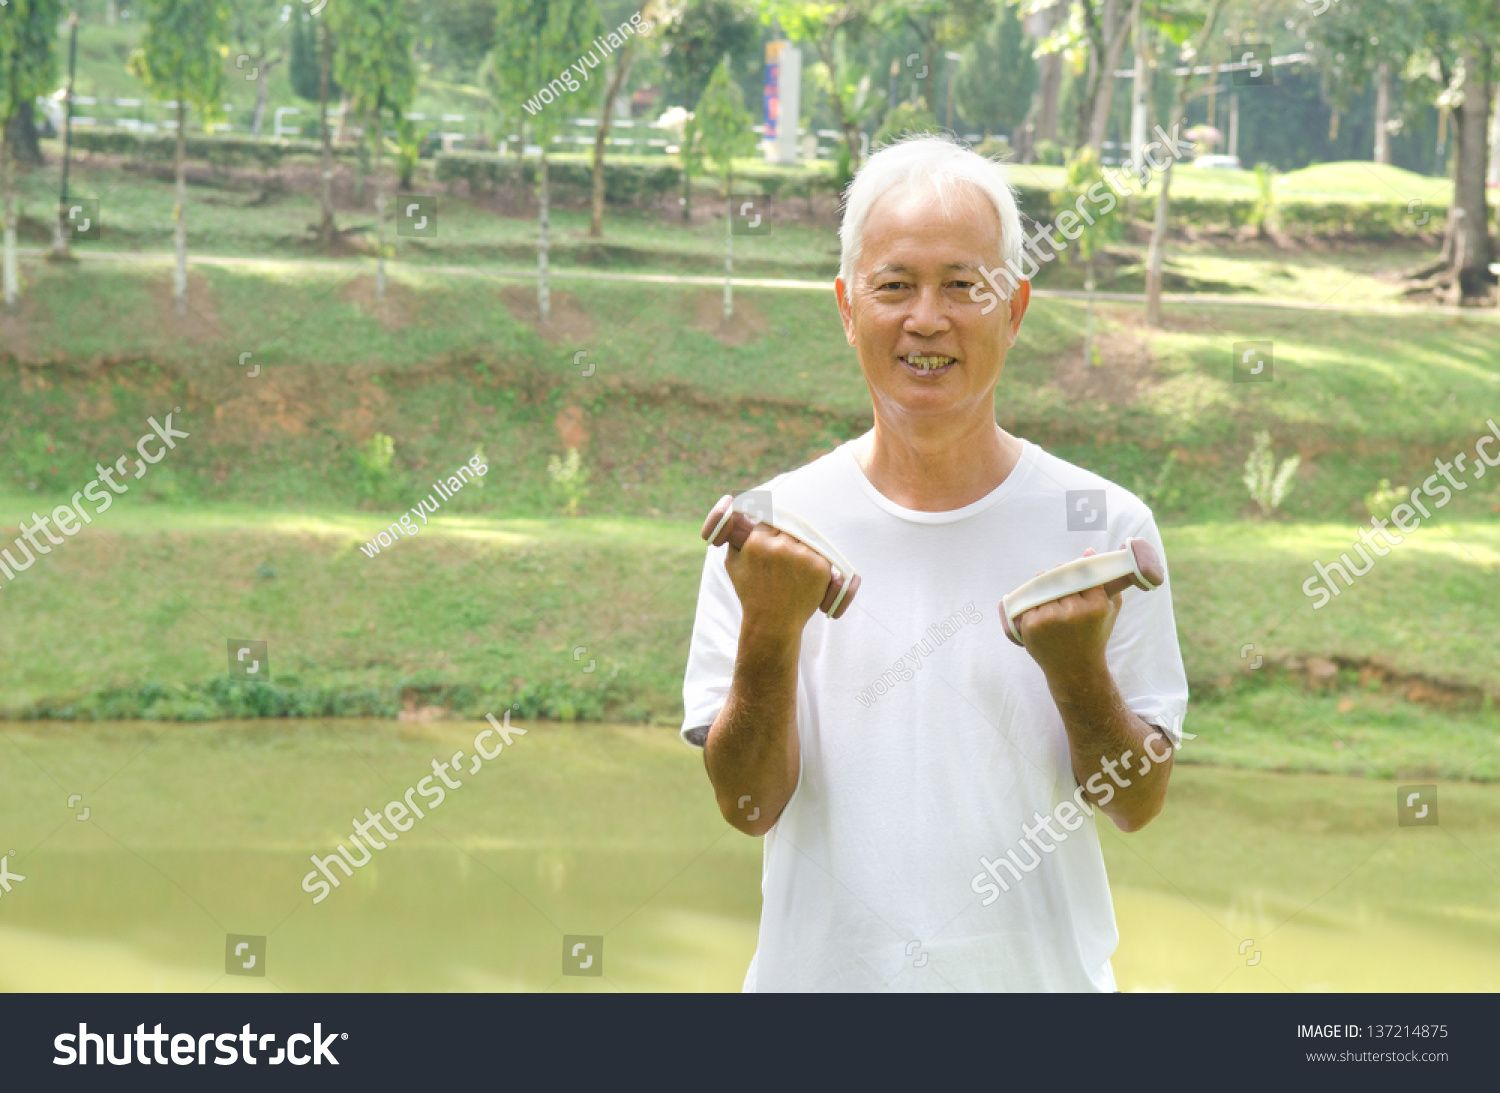 chinese Asian senior man healthy lifestyle working out on a park with a dumbbell #Ad , #Ad, #senior#man#chinese#Asian